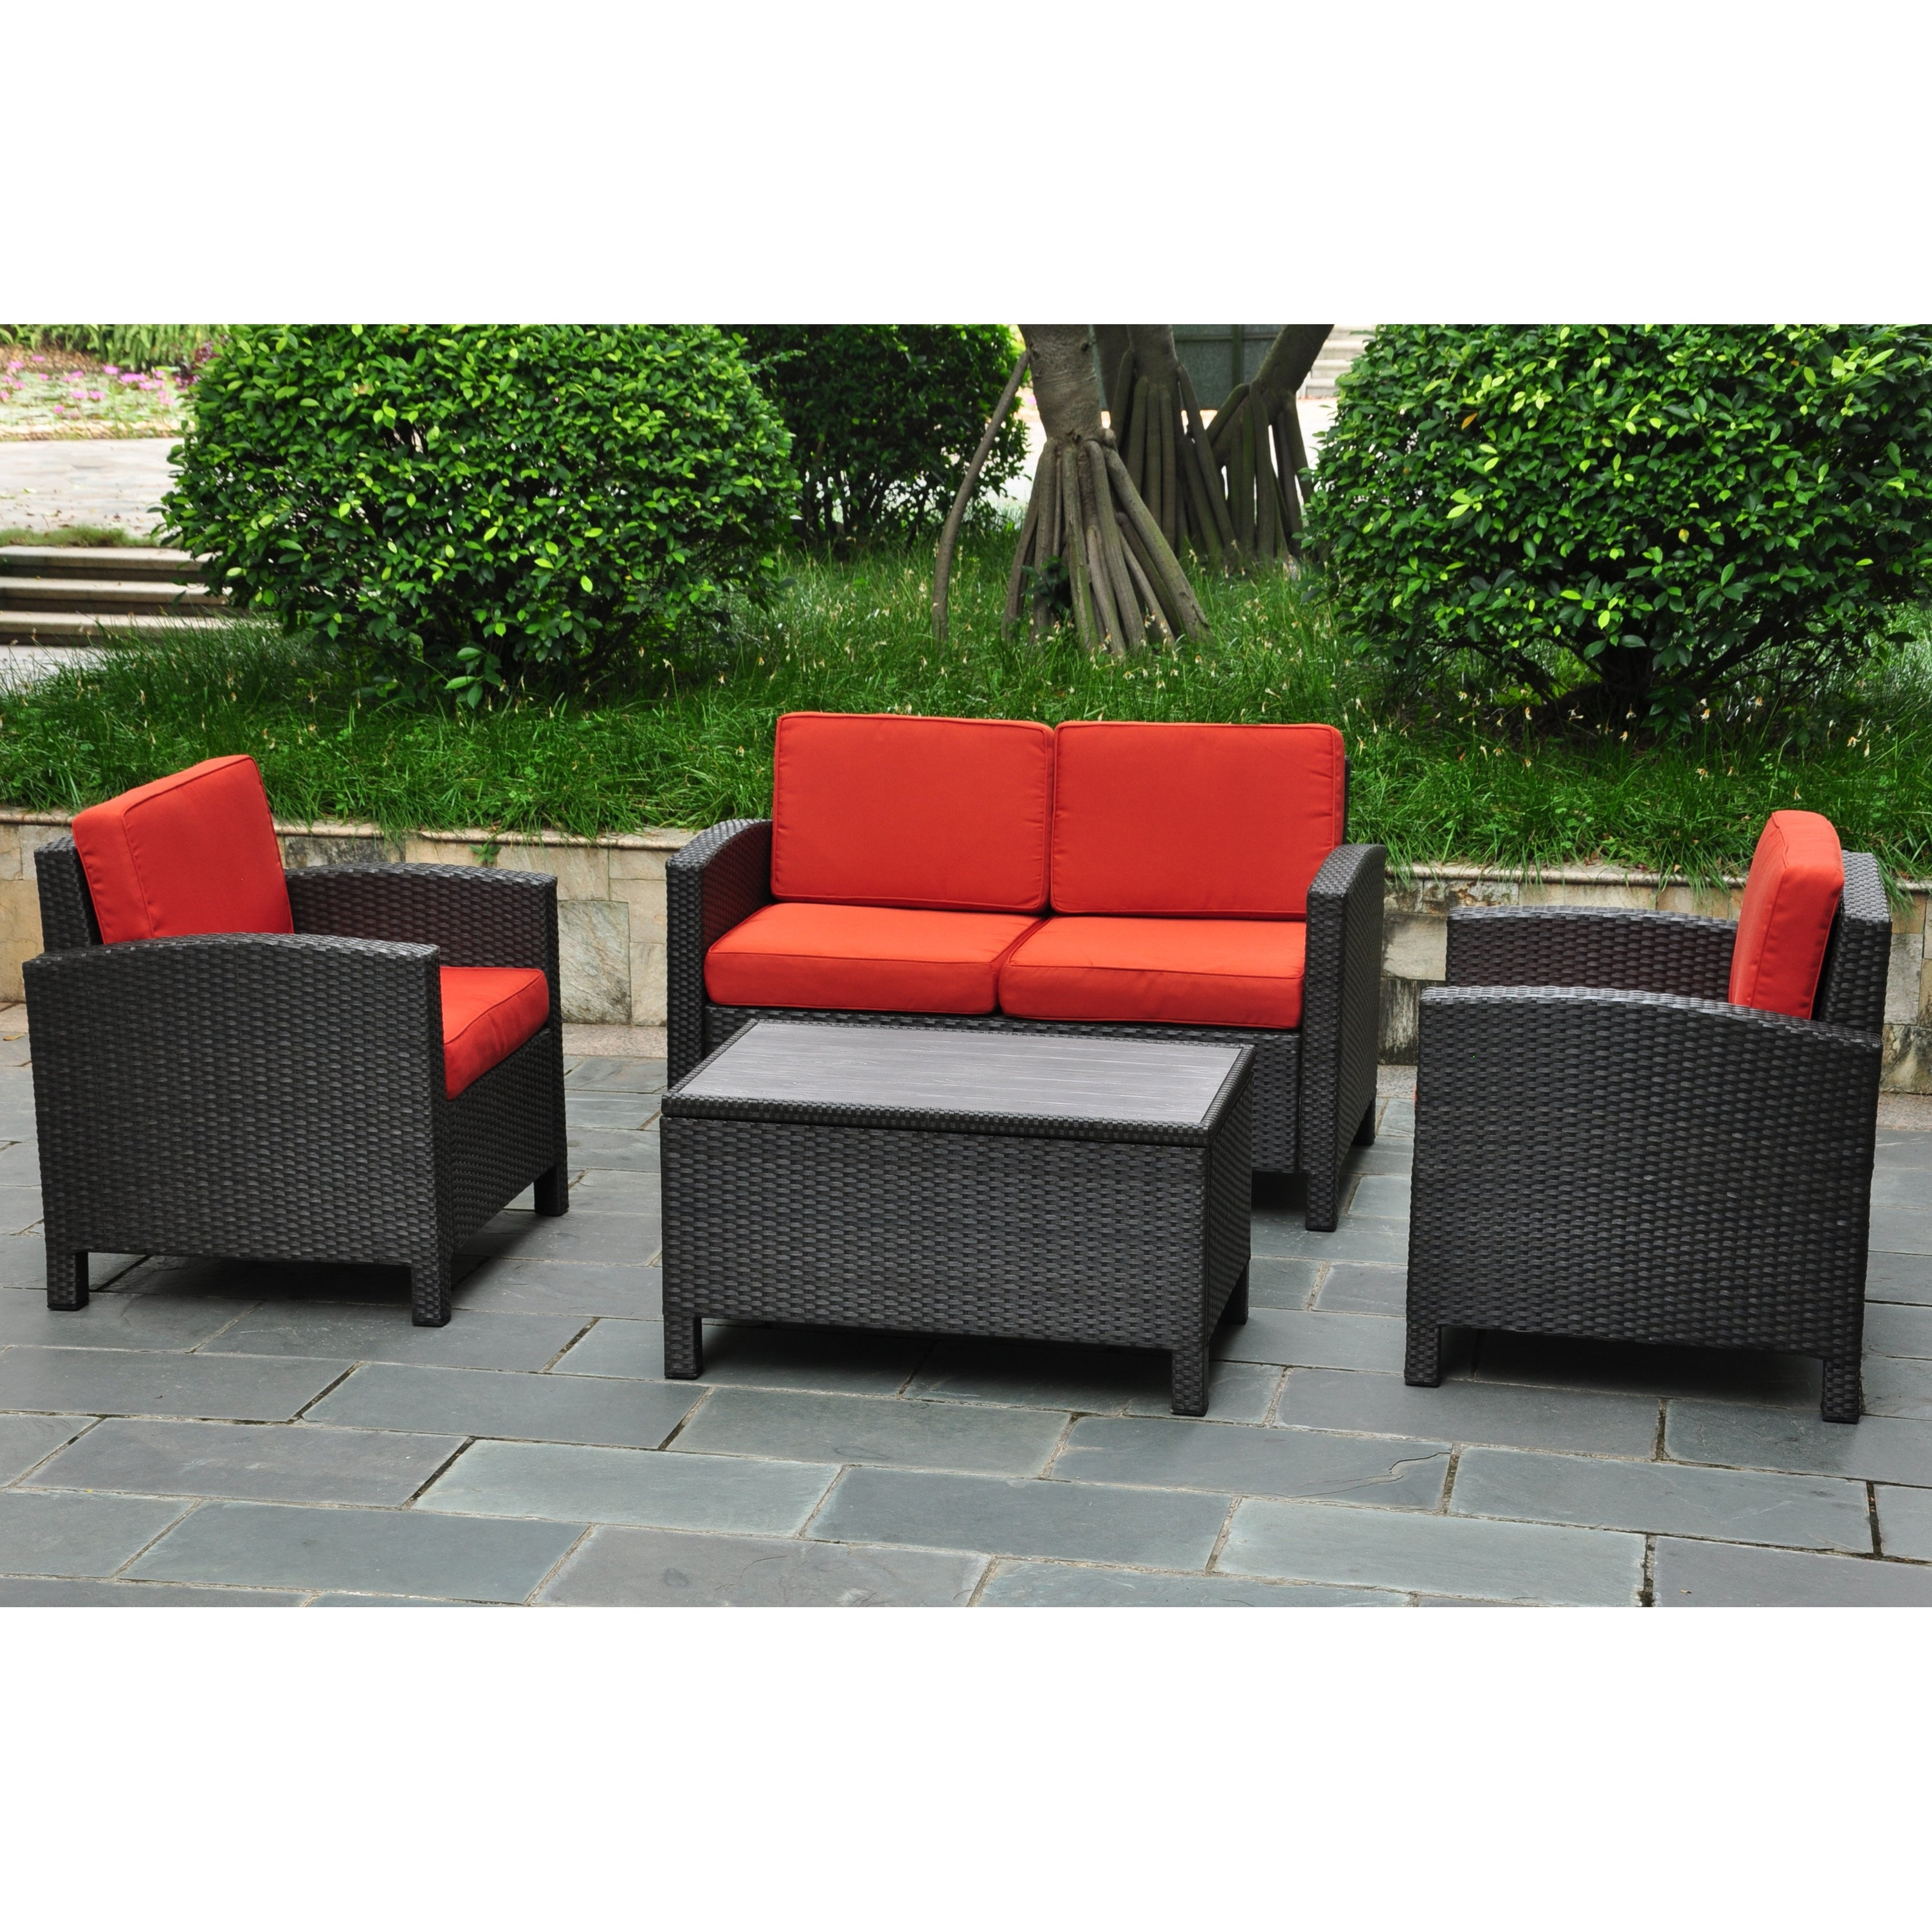 Patio Conversation Sets With Storage For Well Known International Caravan Barcelona Resin Wicker Outdoor Patio Set With (View 4 of 20)